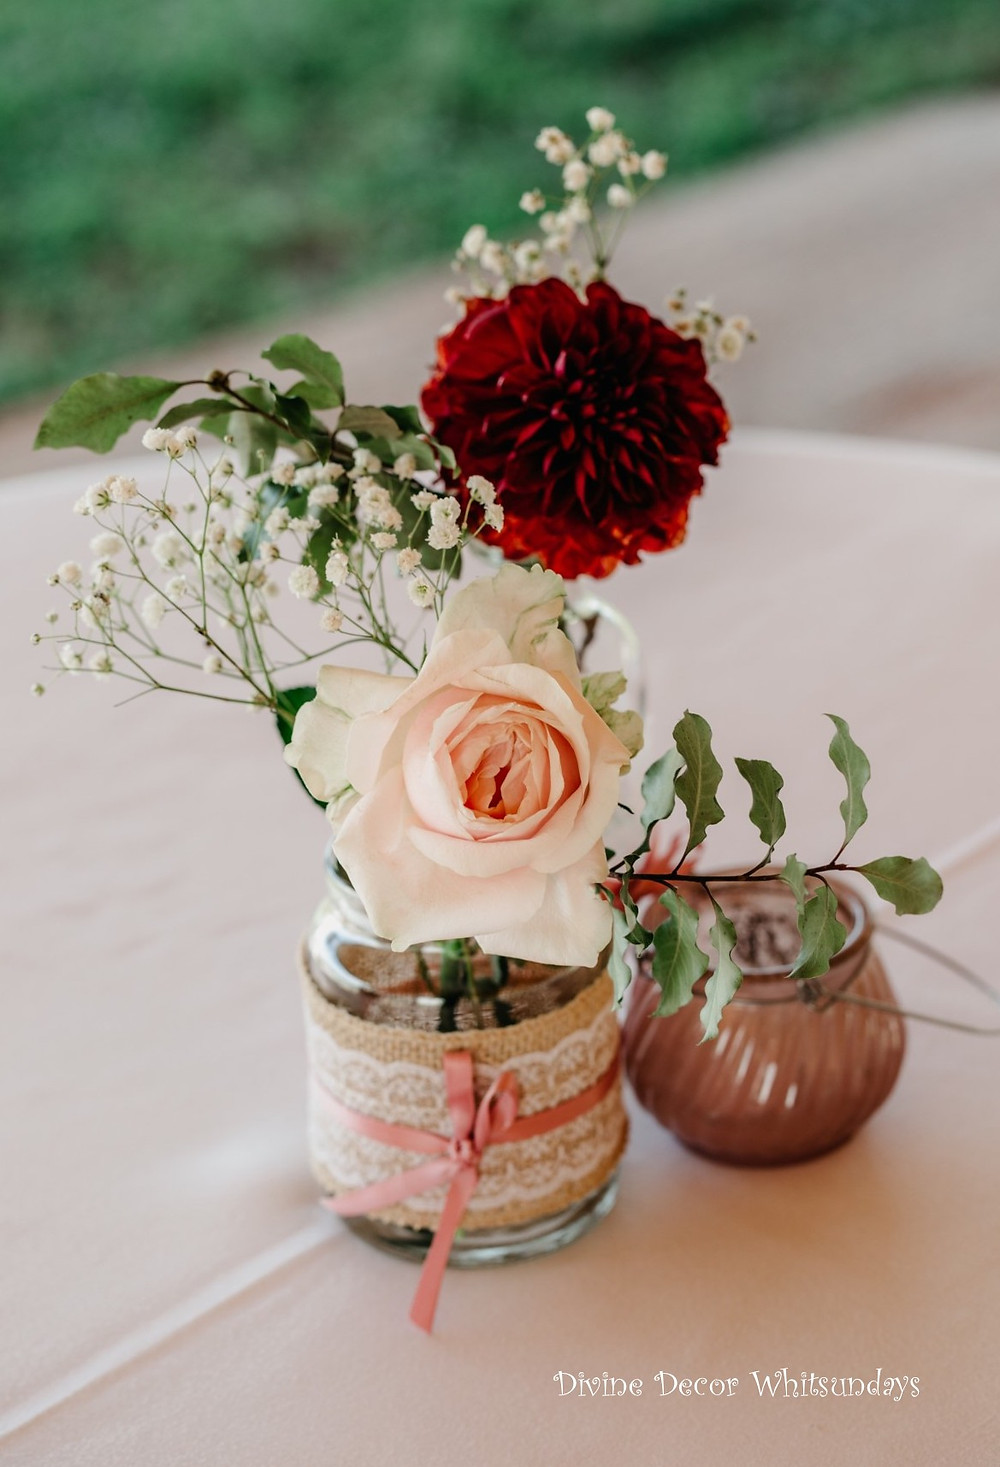 Divine Weddings Whitsundays - Rustic Florals